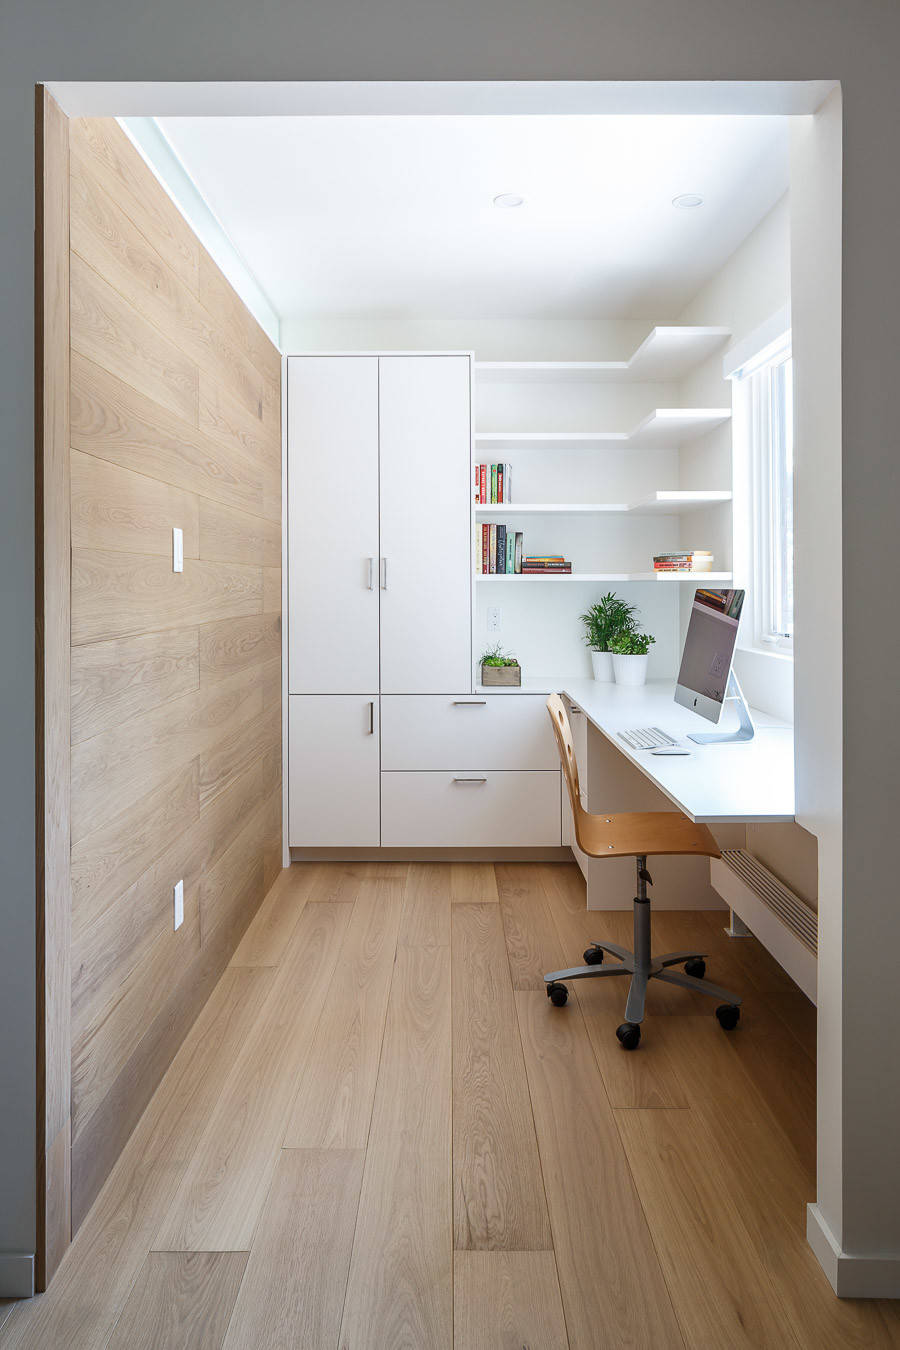 75 Beautiful Modern Study Room Pictures Ideas May 2021 Houzz